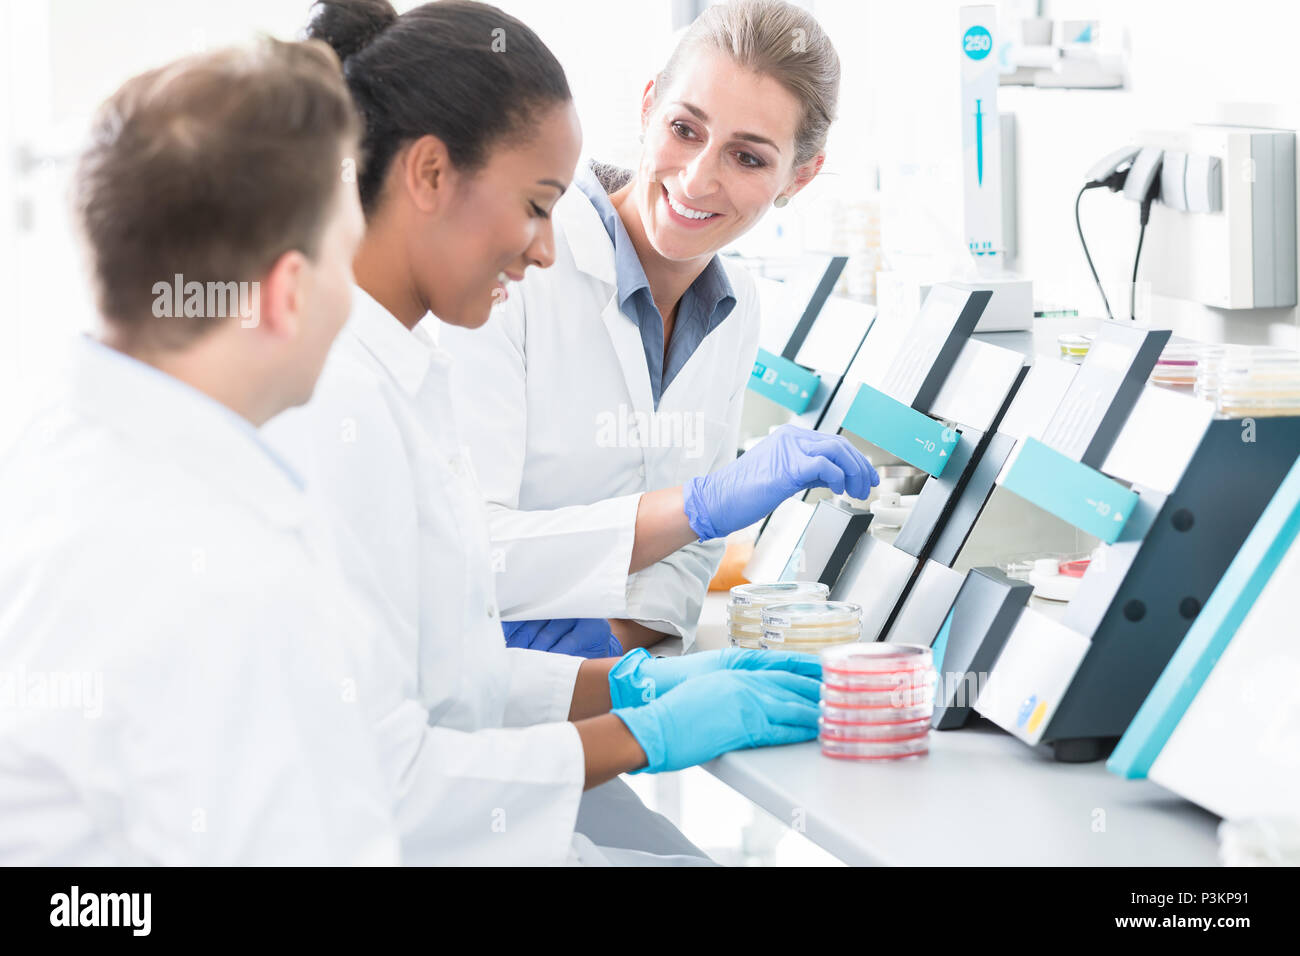 Group of researchers using scientific technology for test of samples - Stock Image